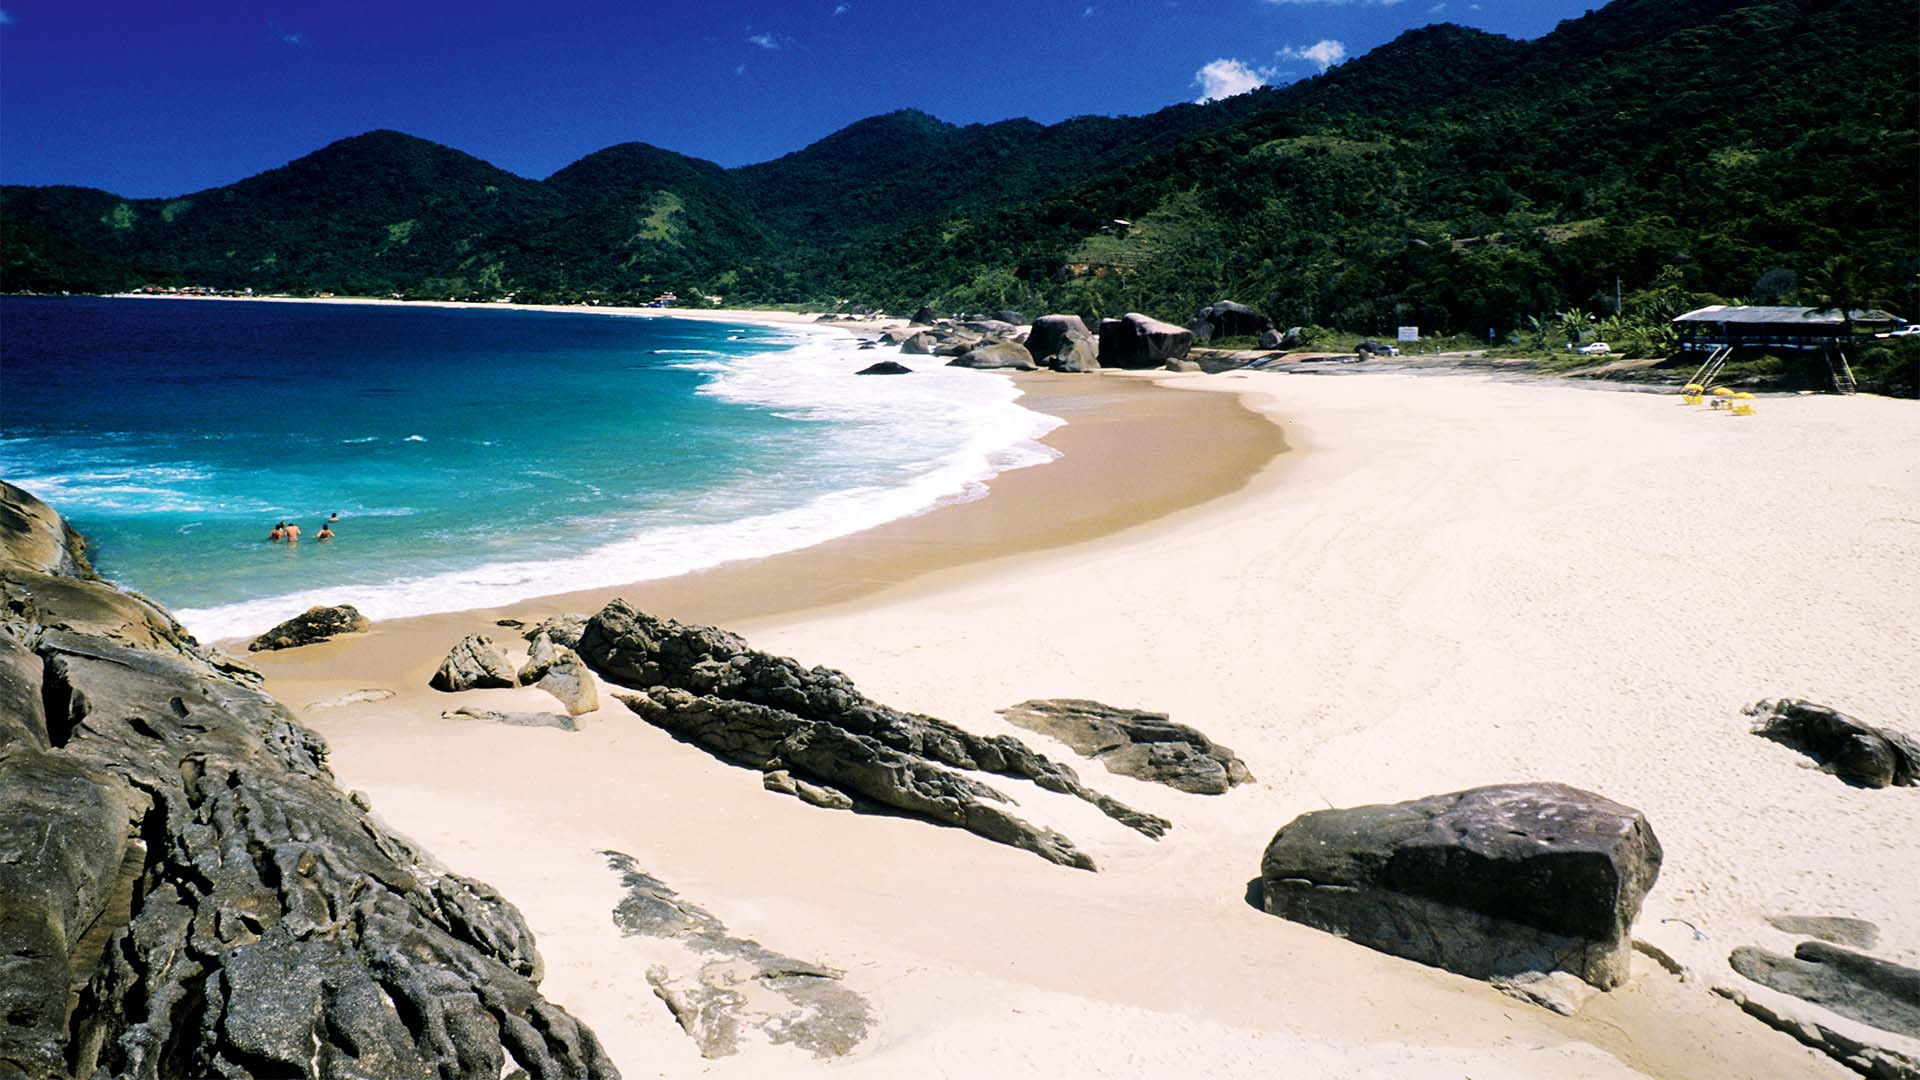 Photograph of tropical beach in Brazil